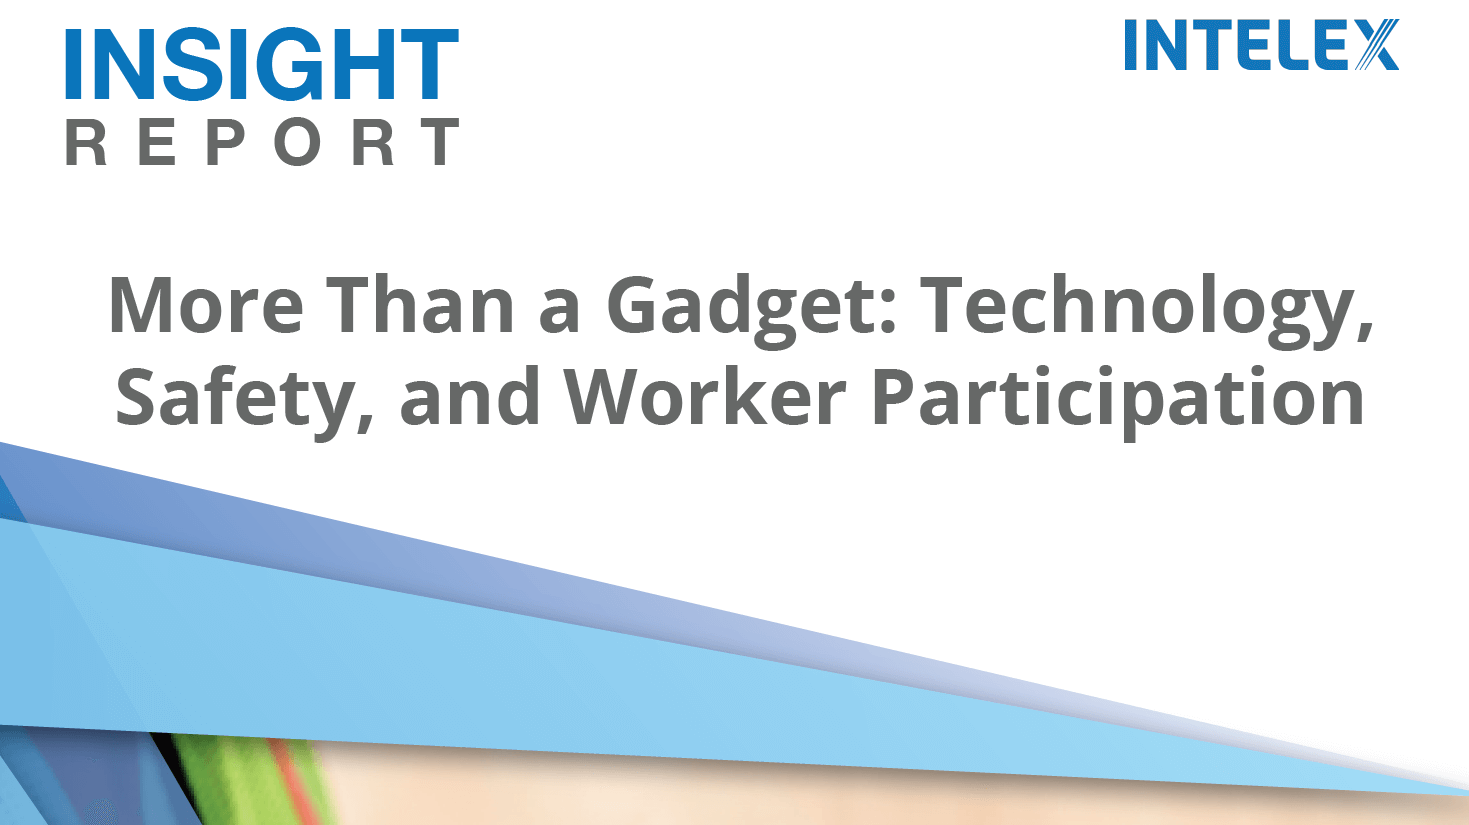 More Than a Gadget: Technology, Safety, and Worker Participation